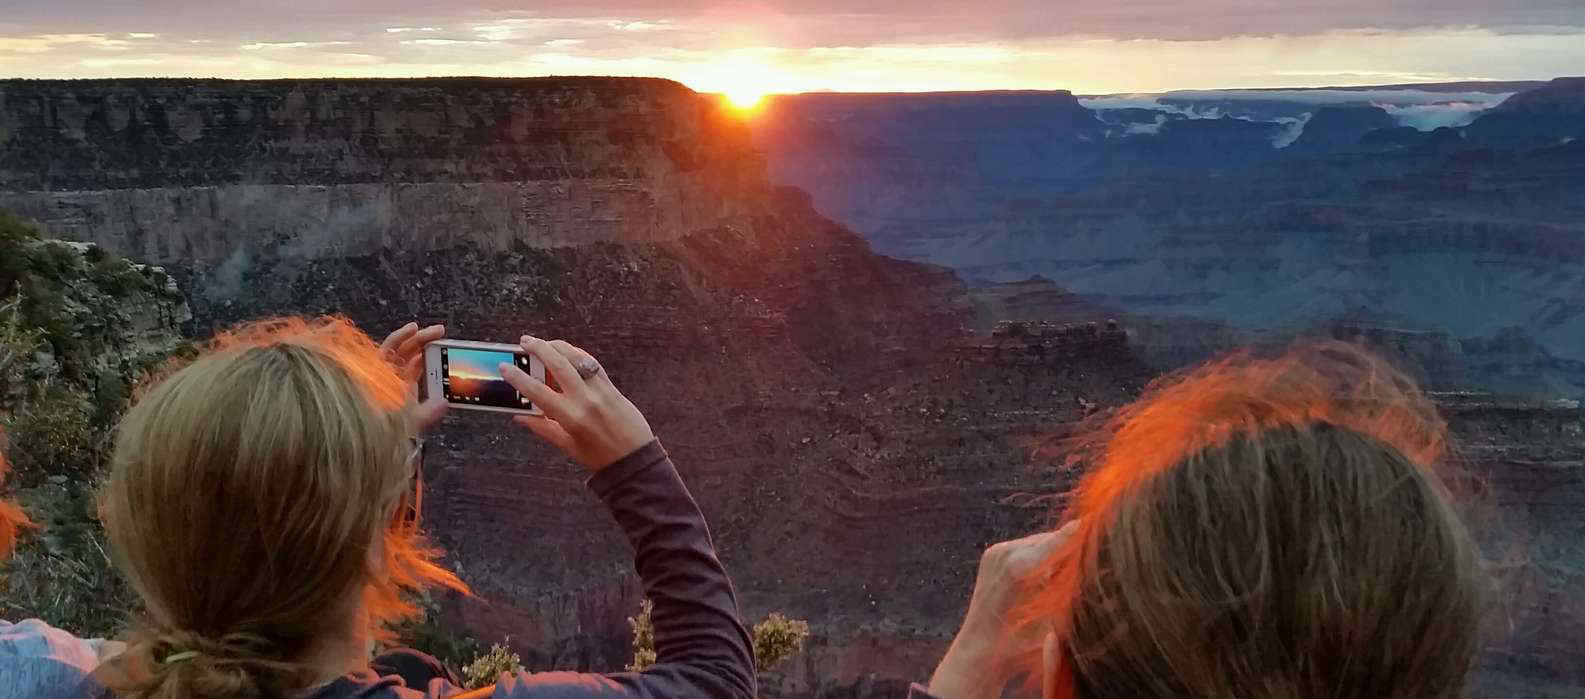 9 Smartphone Photo Tips: Las Vegas Day Trip (From A Las Vegas Tour Guide)